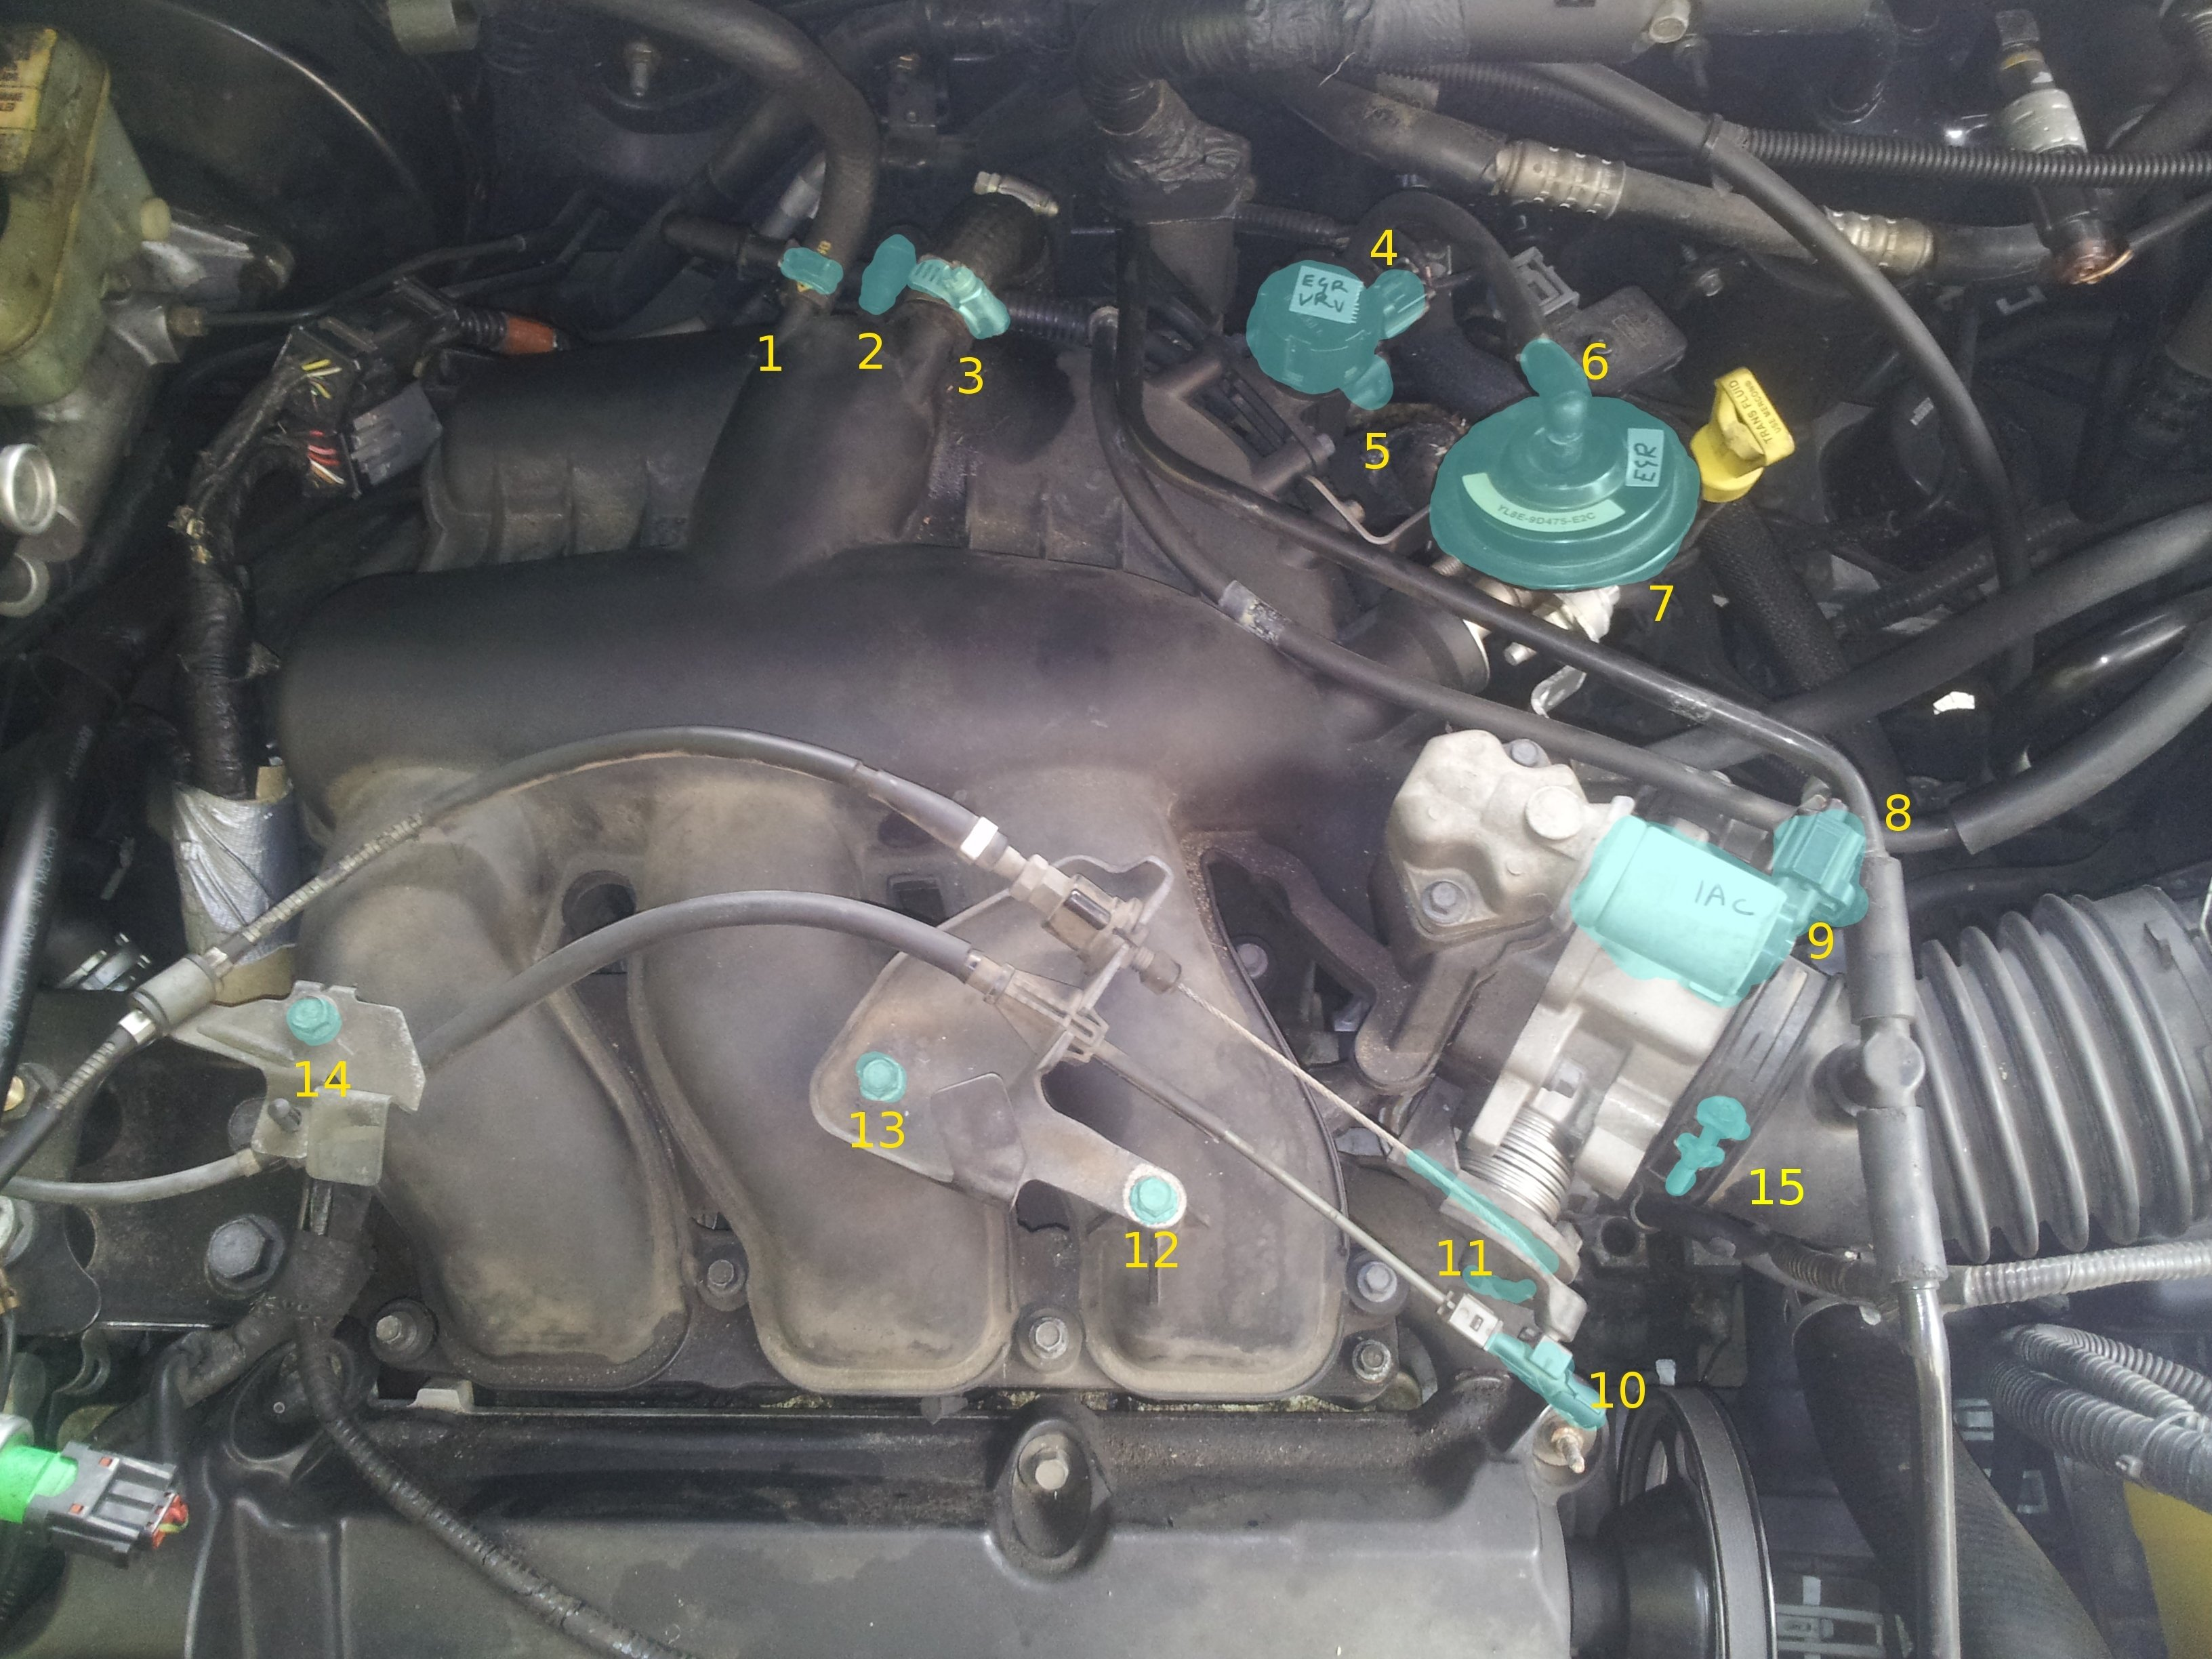 1995 mazda 3 0 engine diagram - hunter fan sd switch wiring diagram -  fisher-wire.holden-commodore.jeanjaures37.fr  wiring diagram resource